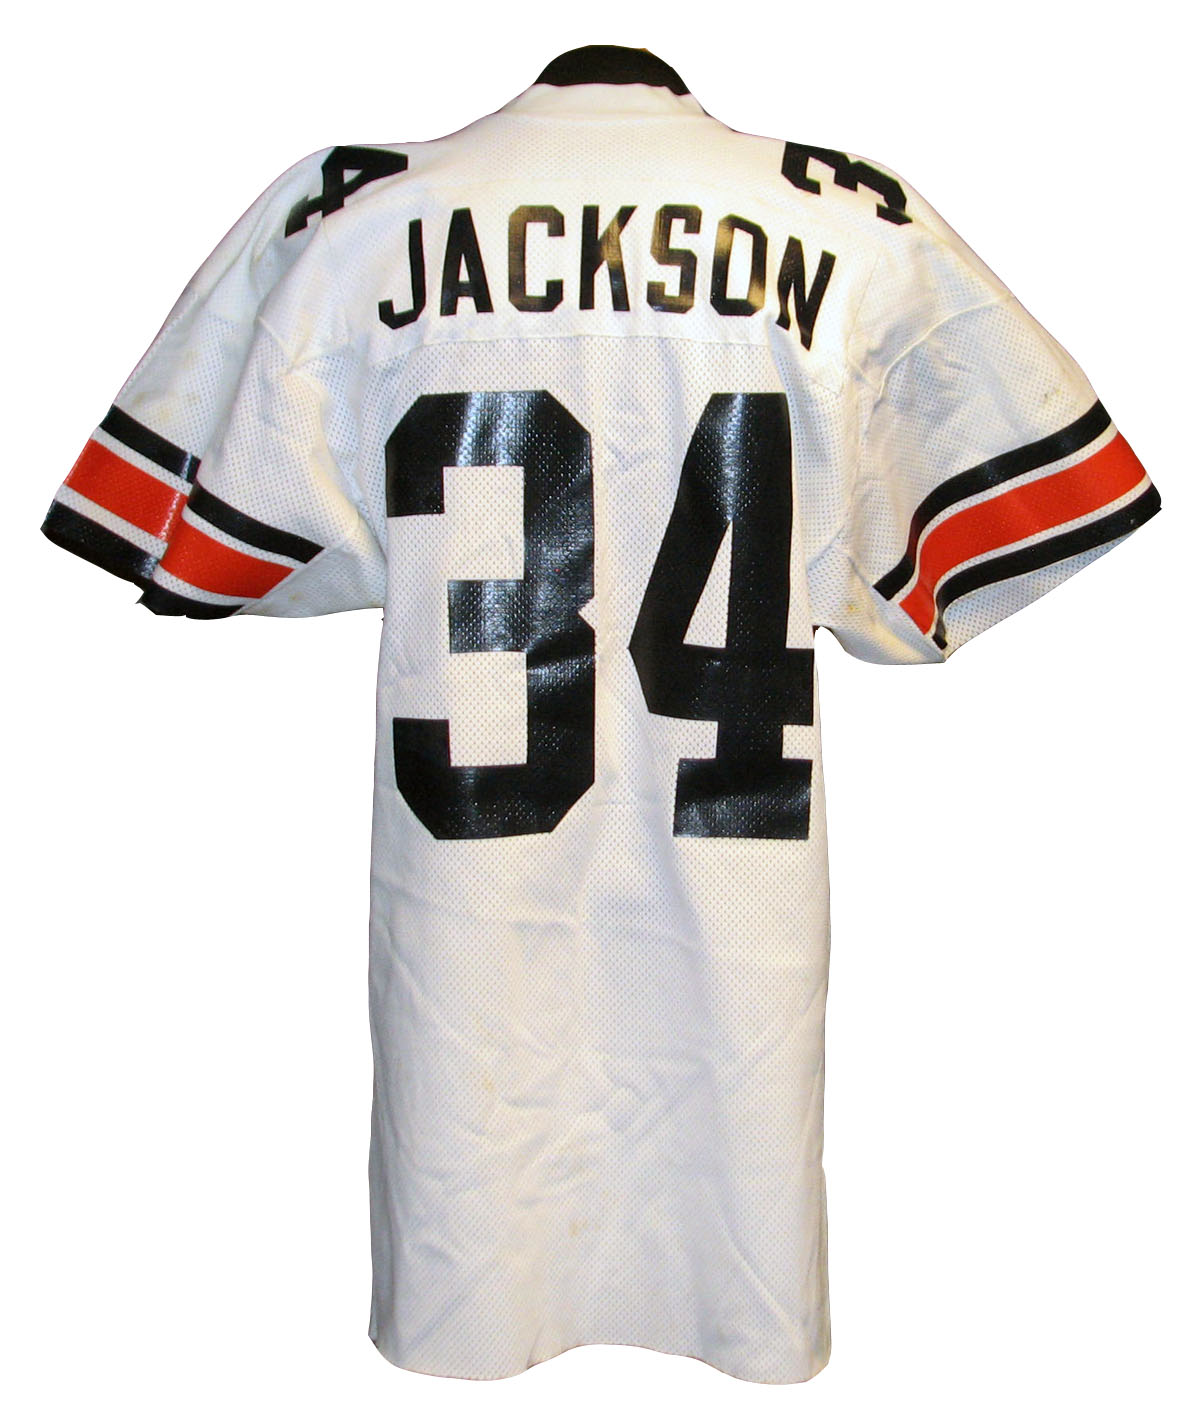 detailed look 34530 cc648 bo jackson college jersey